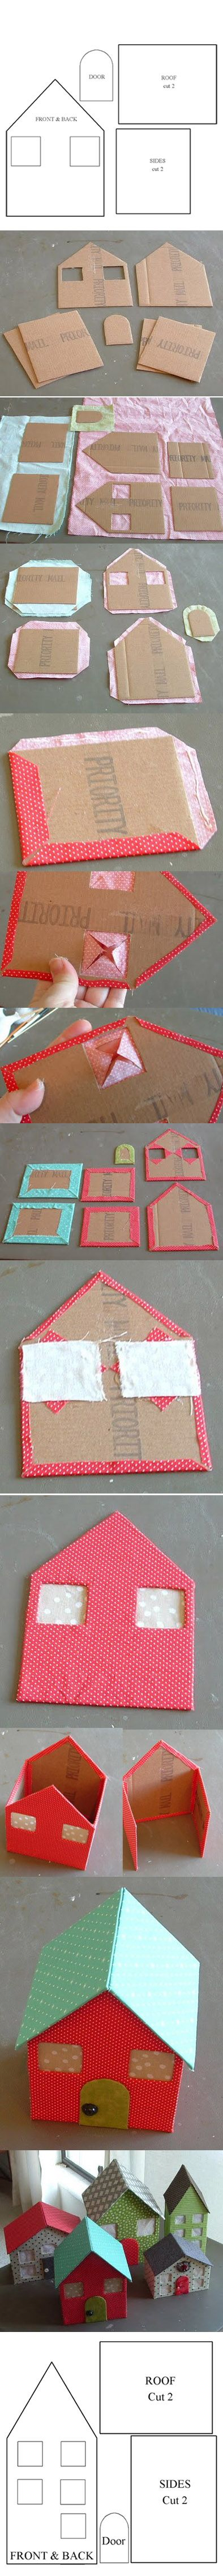 DIY. Fun tiny cardboard houses, with patterns